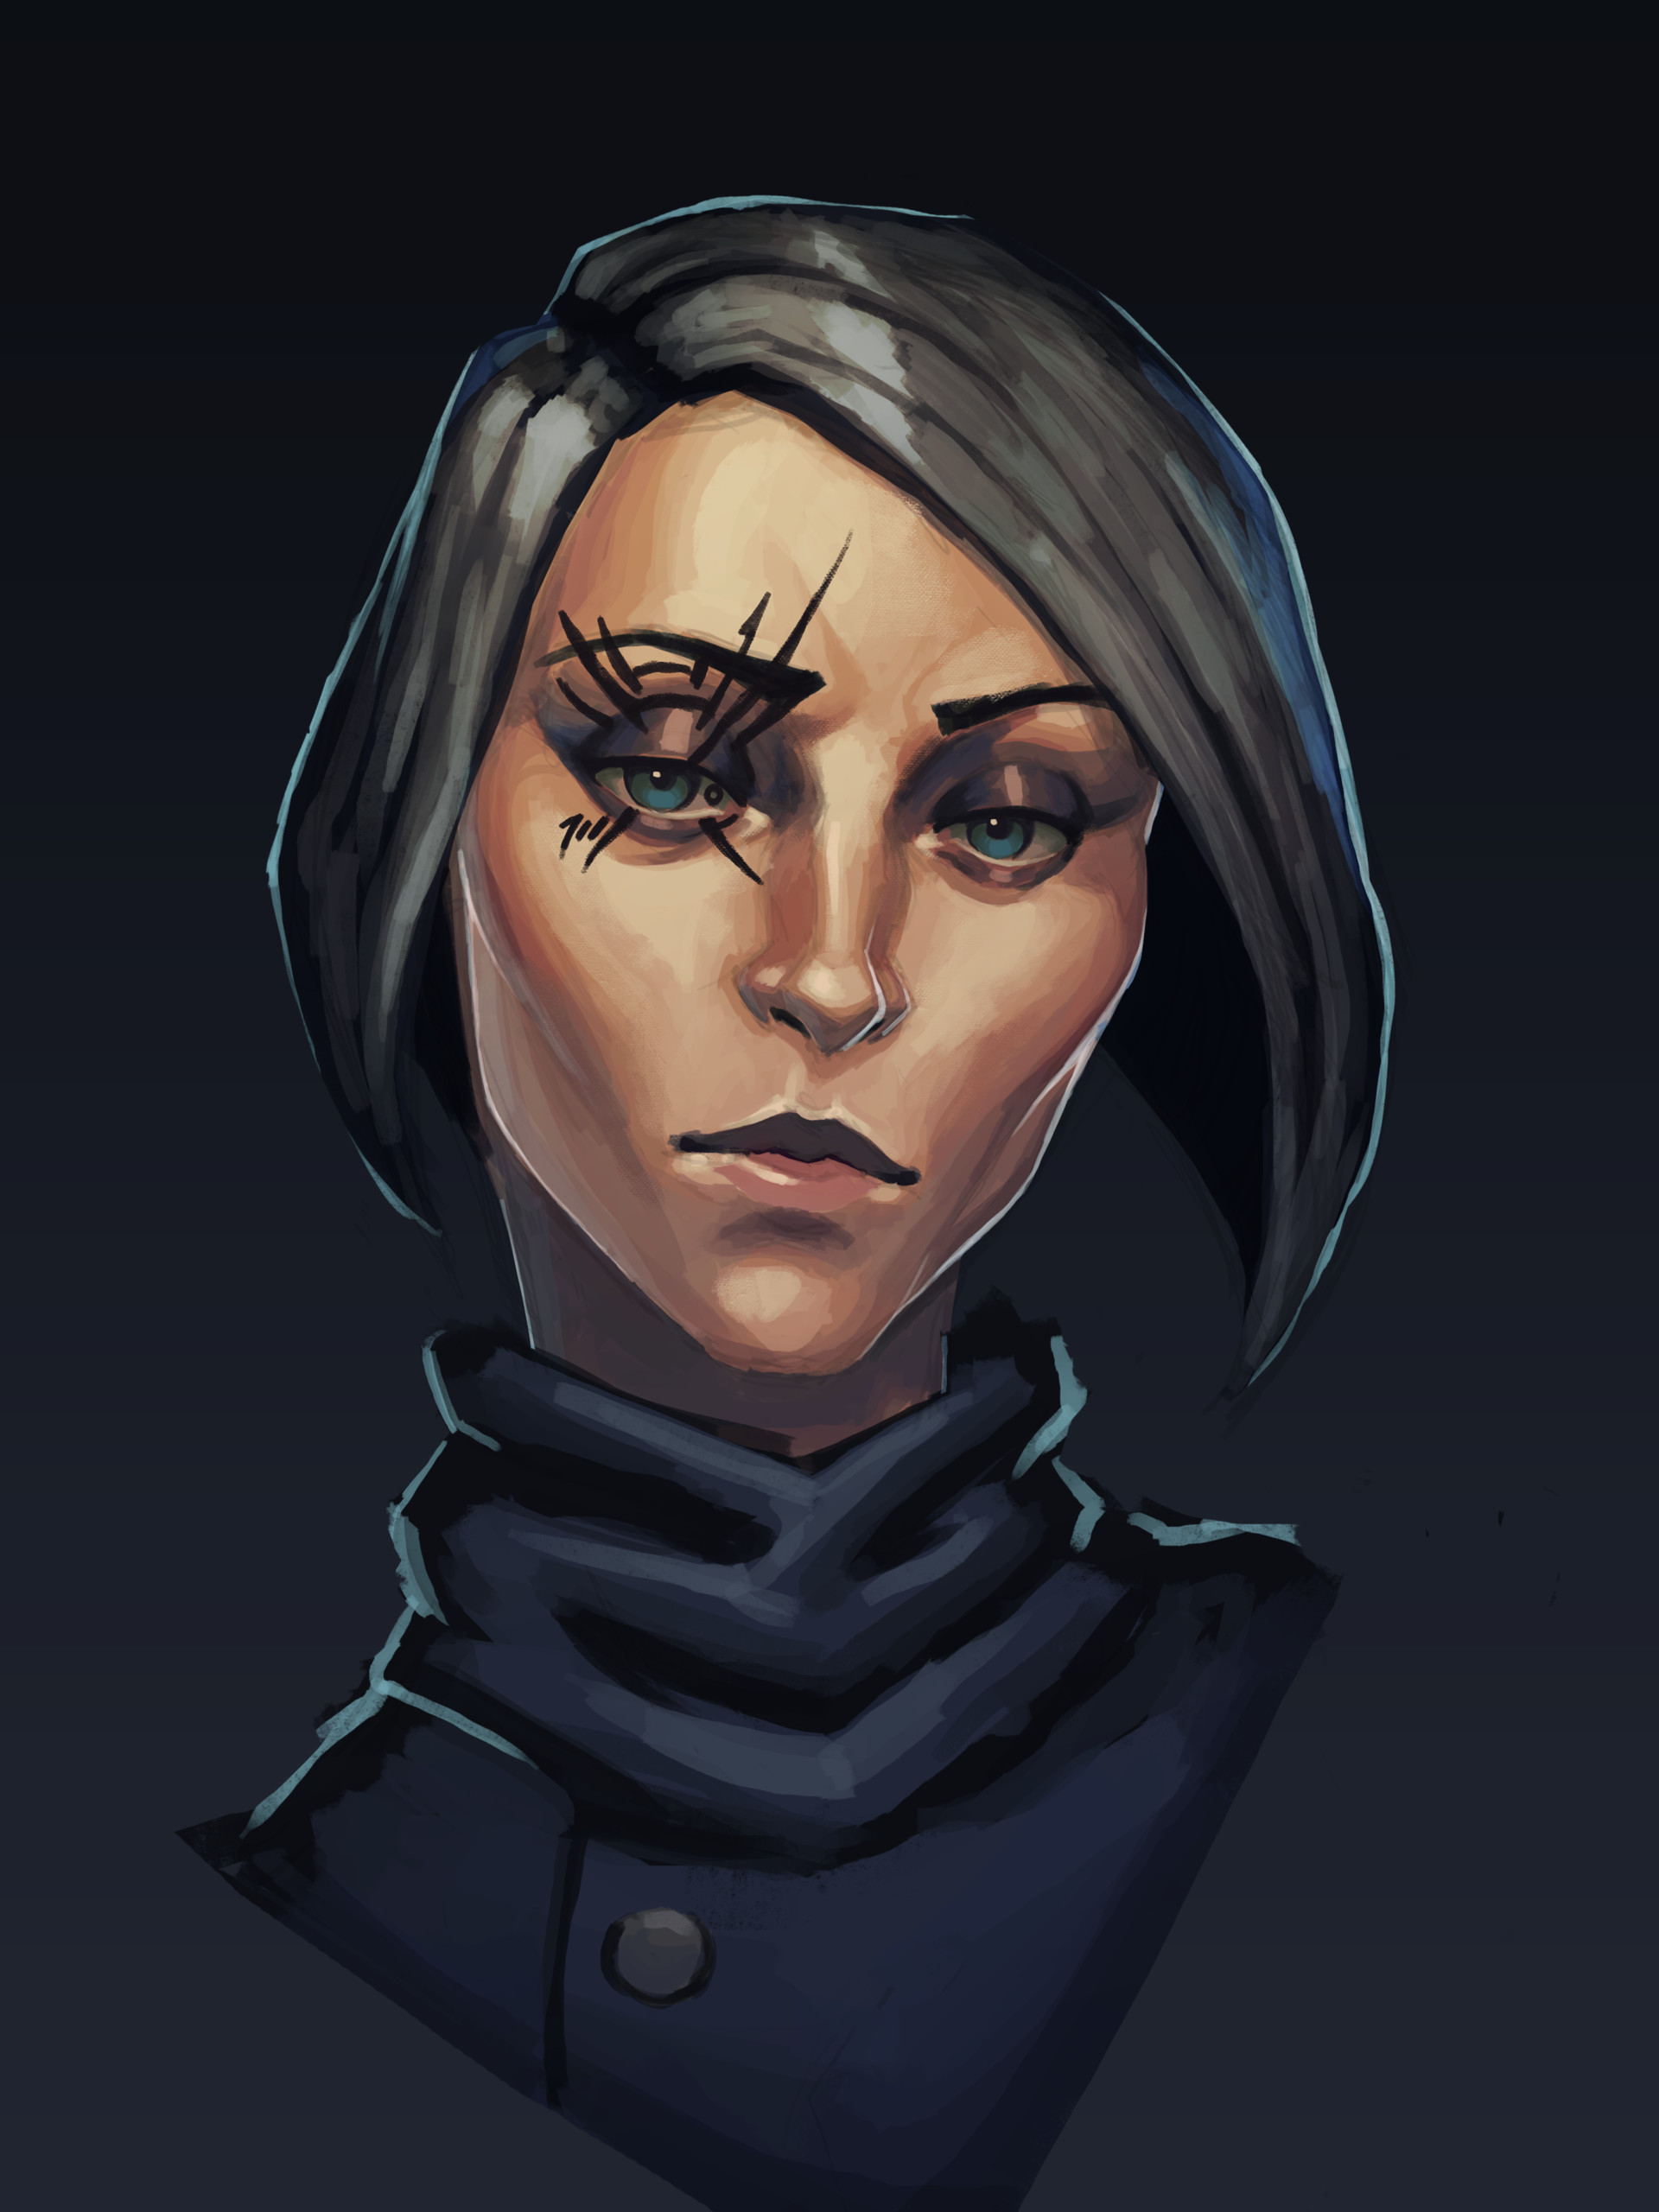 artstation dishonored style portrait